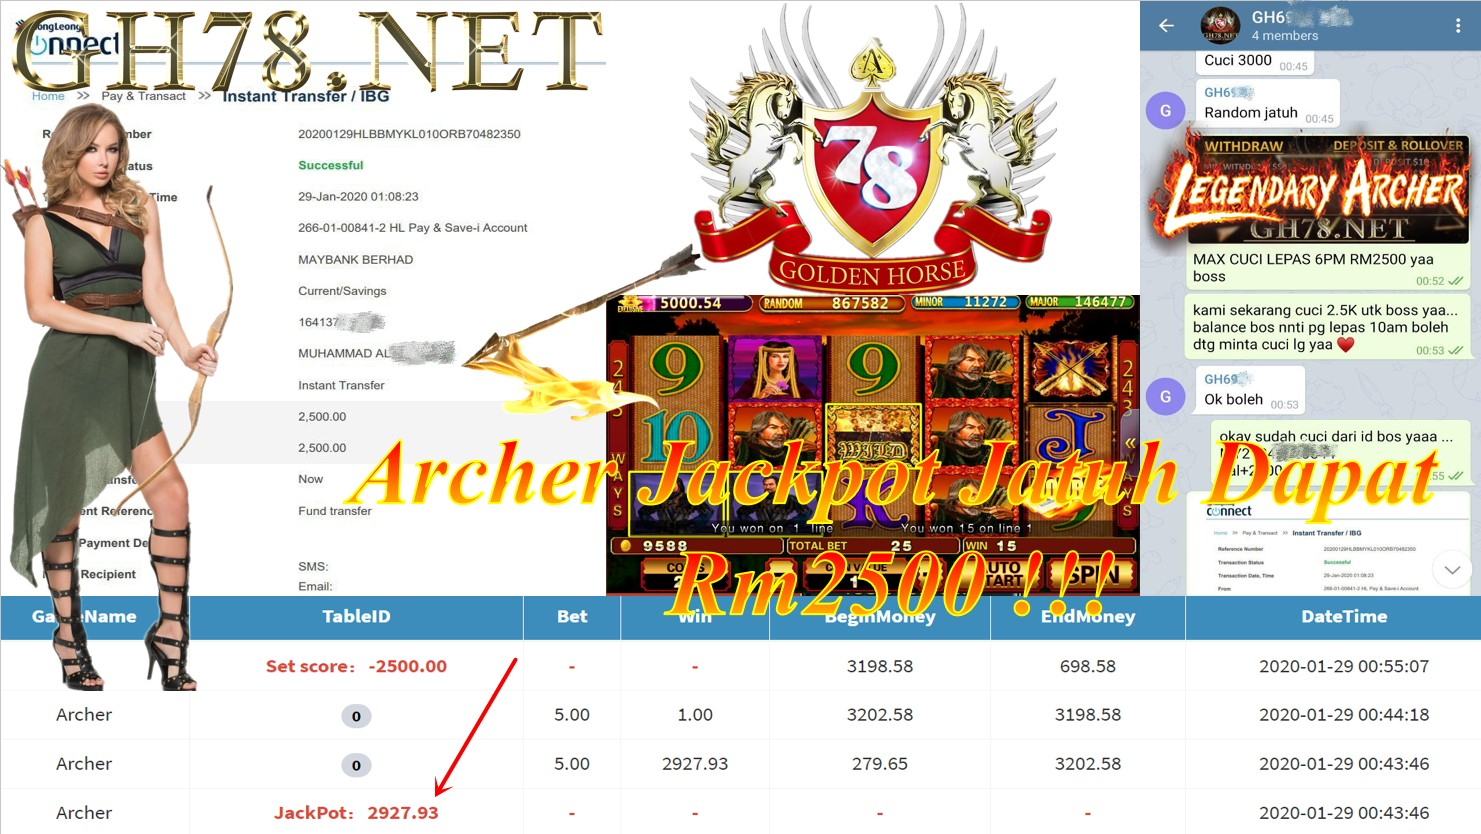 2020 NEW YEAR !!! MEMBER MAIN PUSSY888, ARCHER , WITHDRAW RM2500!!!!